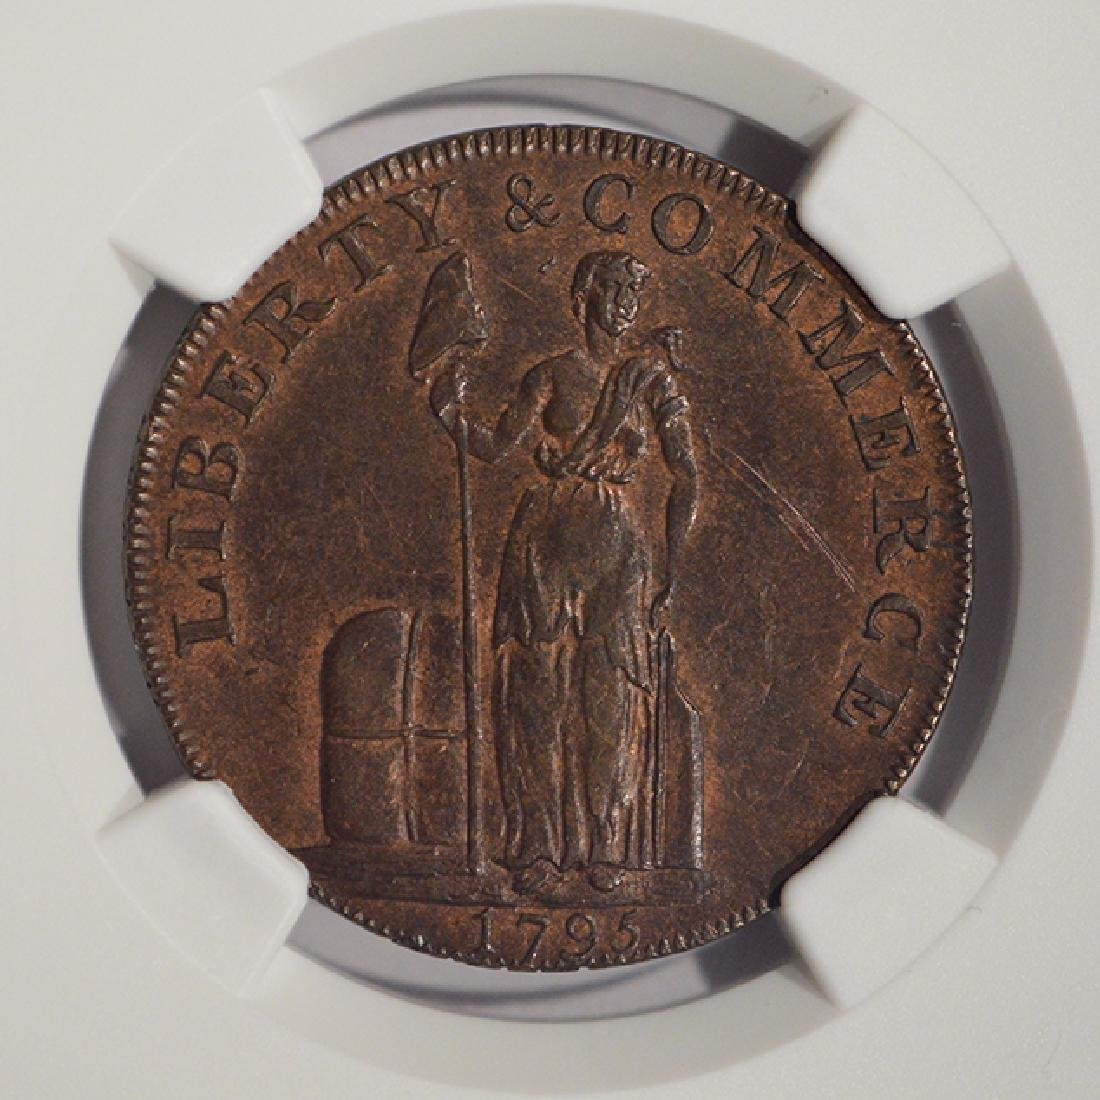 1795 Letter Edge Cent Coin NGC MS61BN - 3